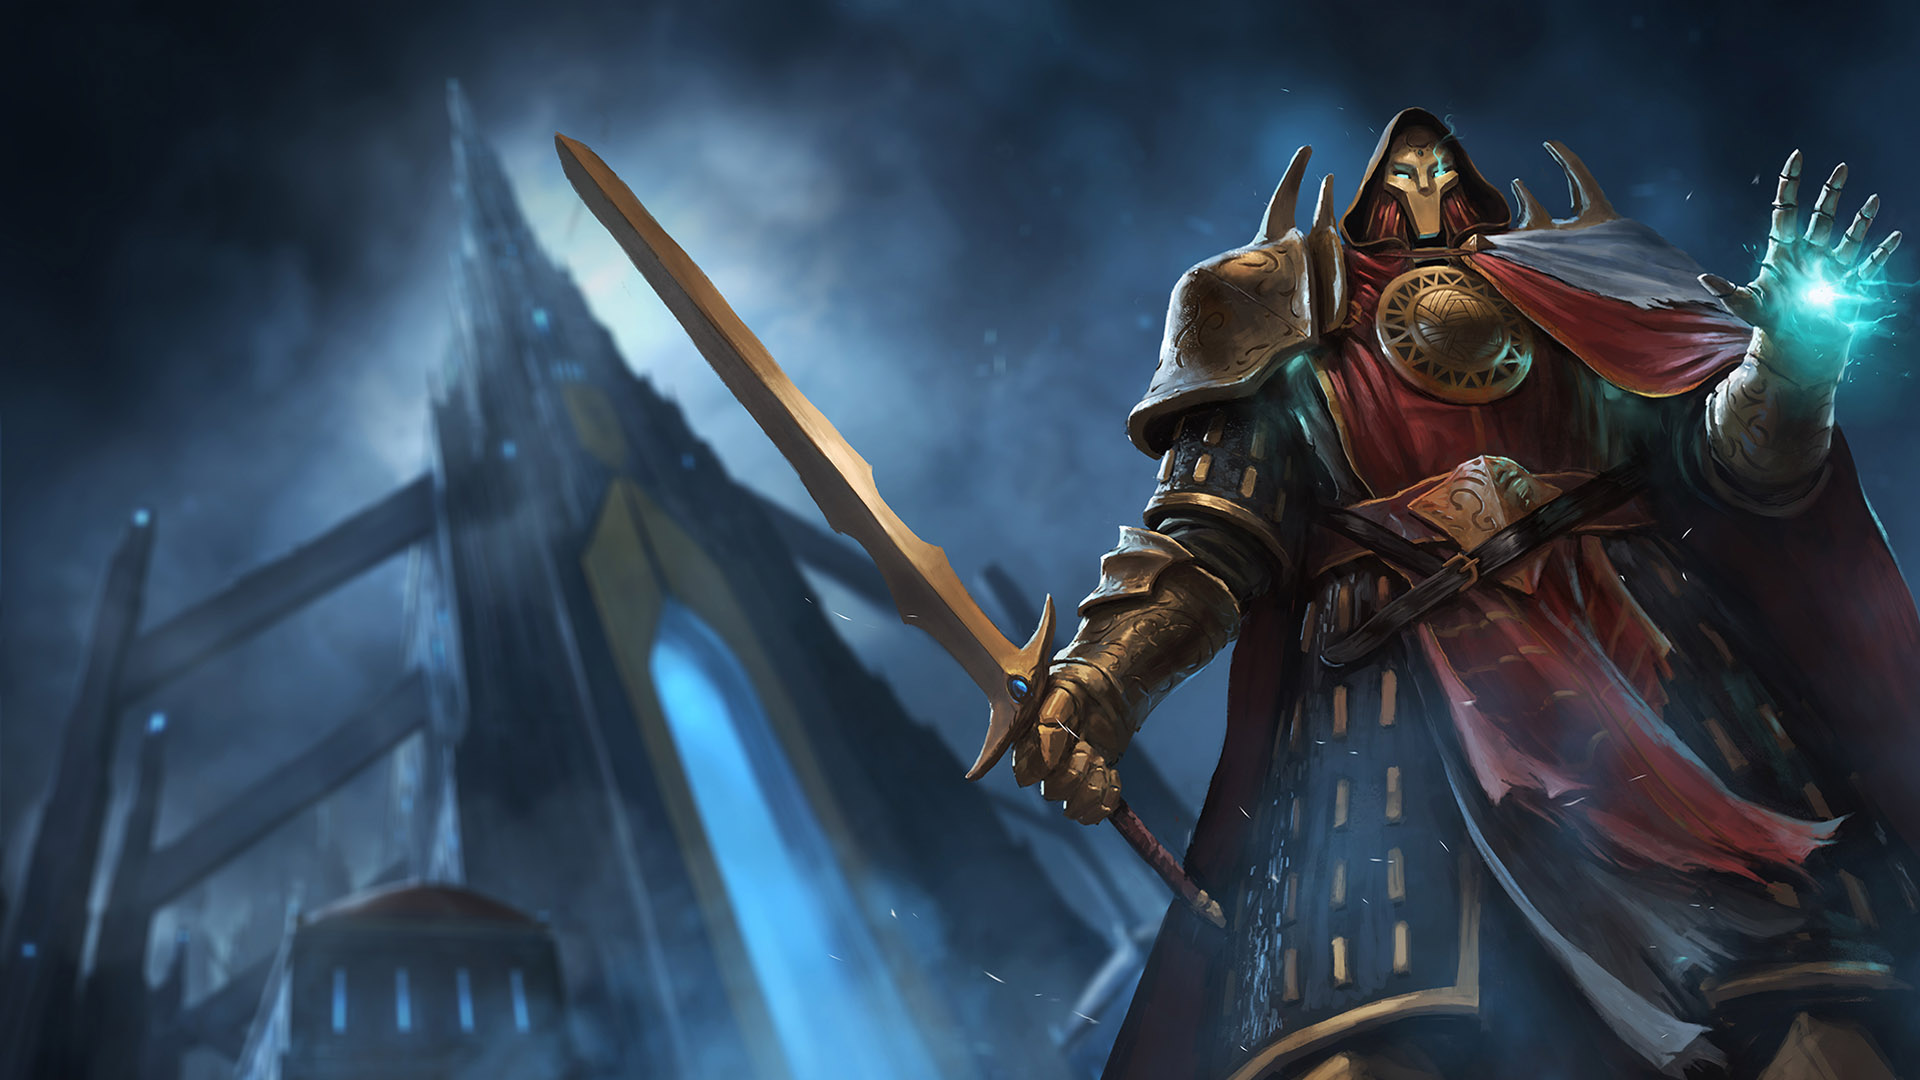 Endless legend the broken lords steam trading cards - Endless legend broken lords ...